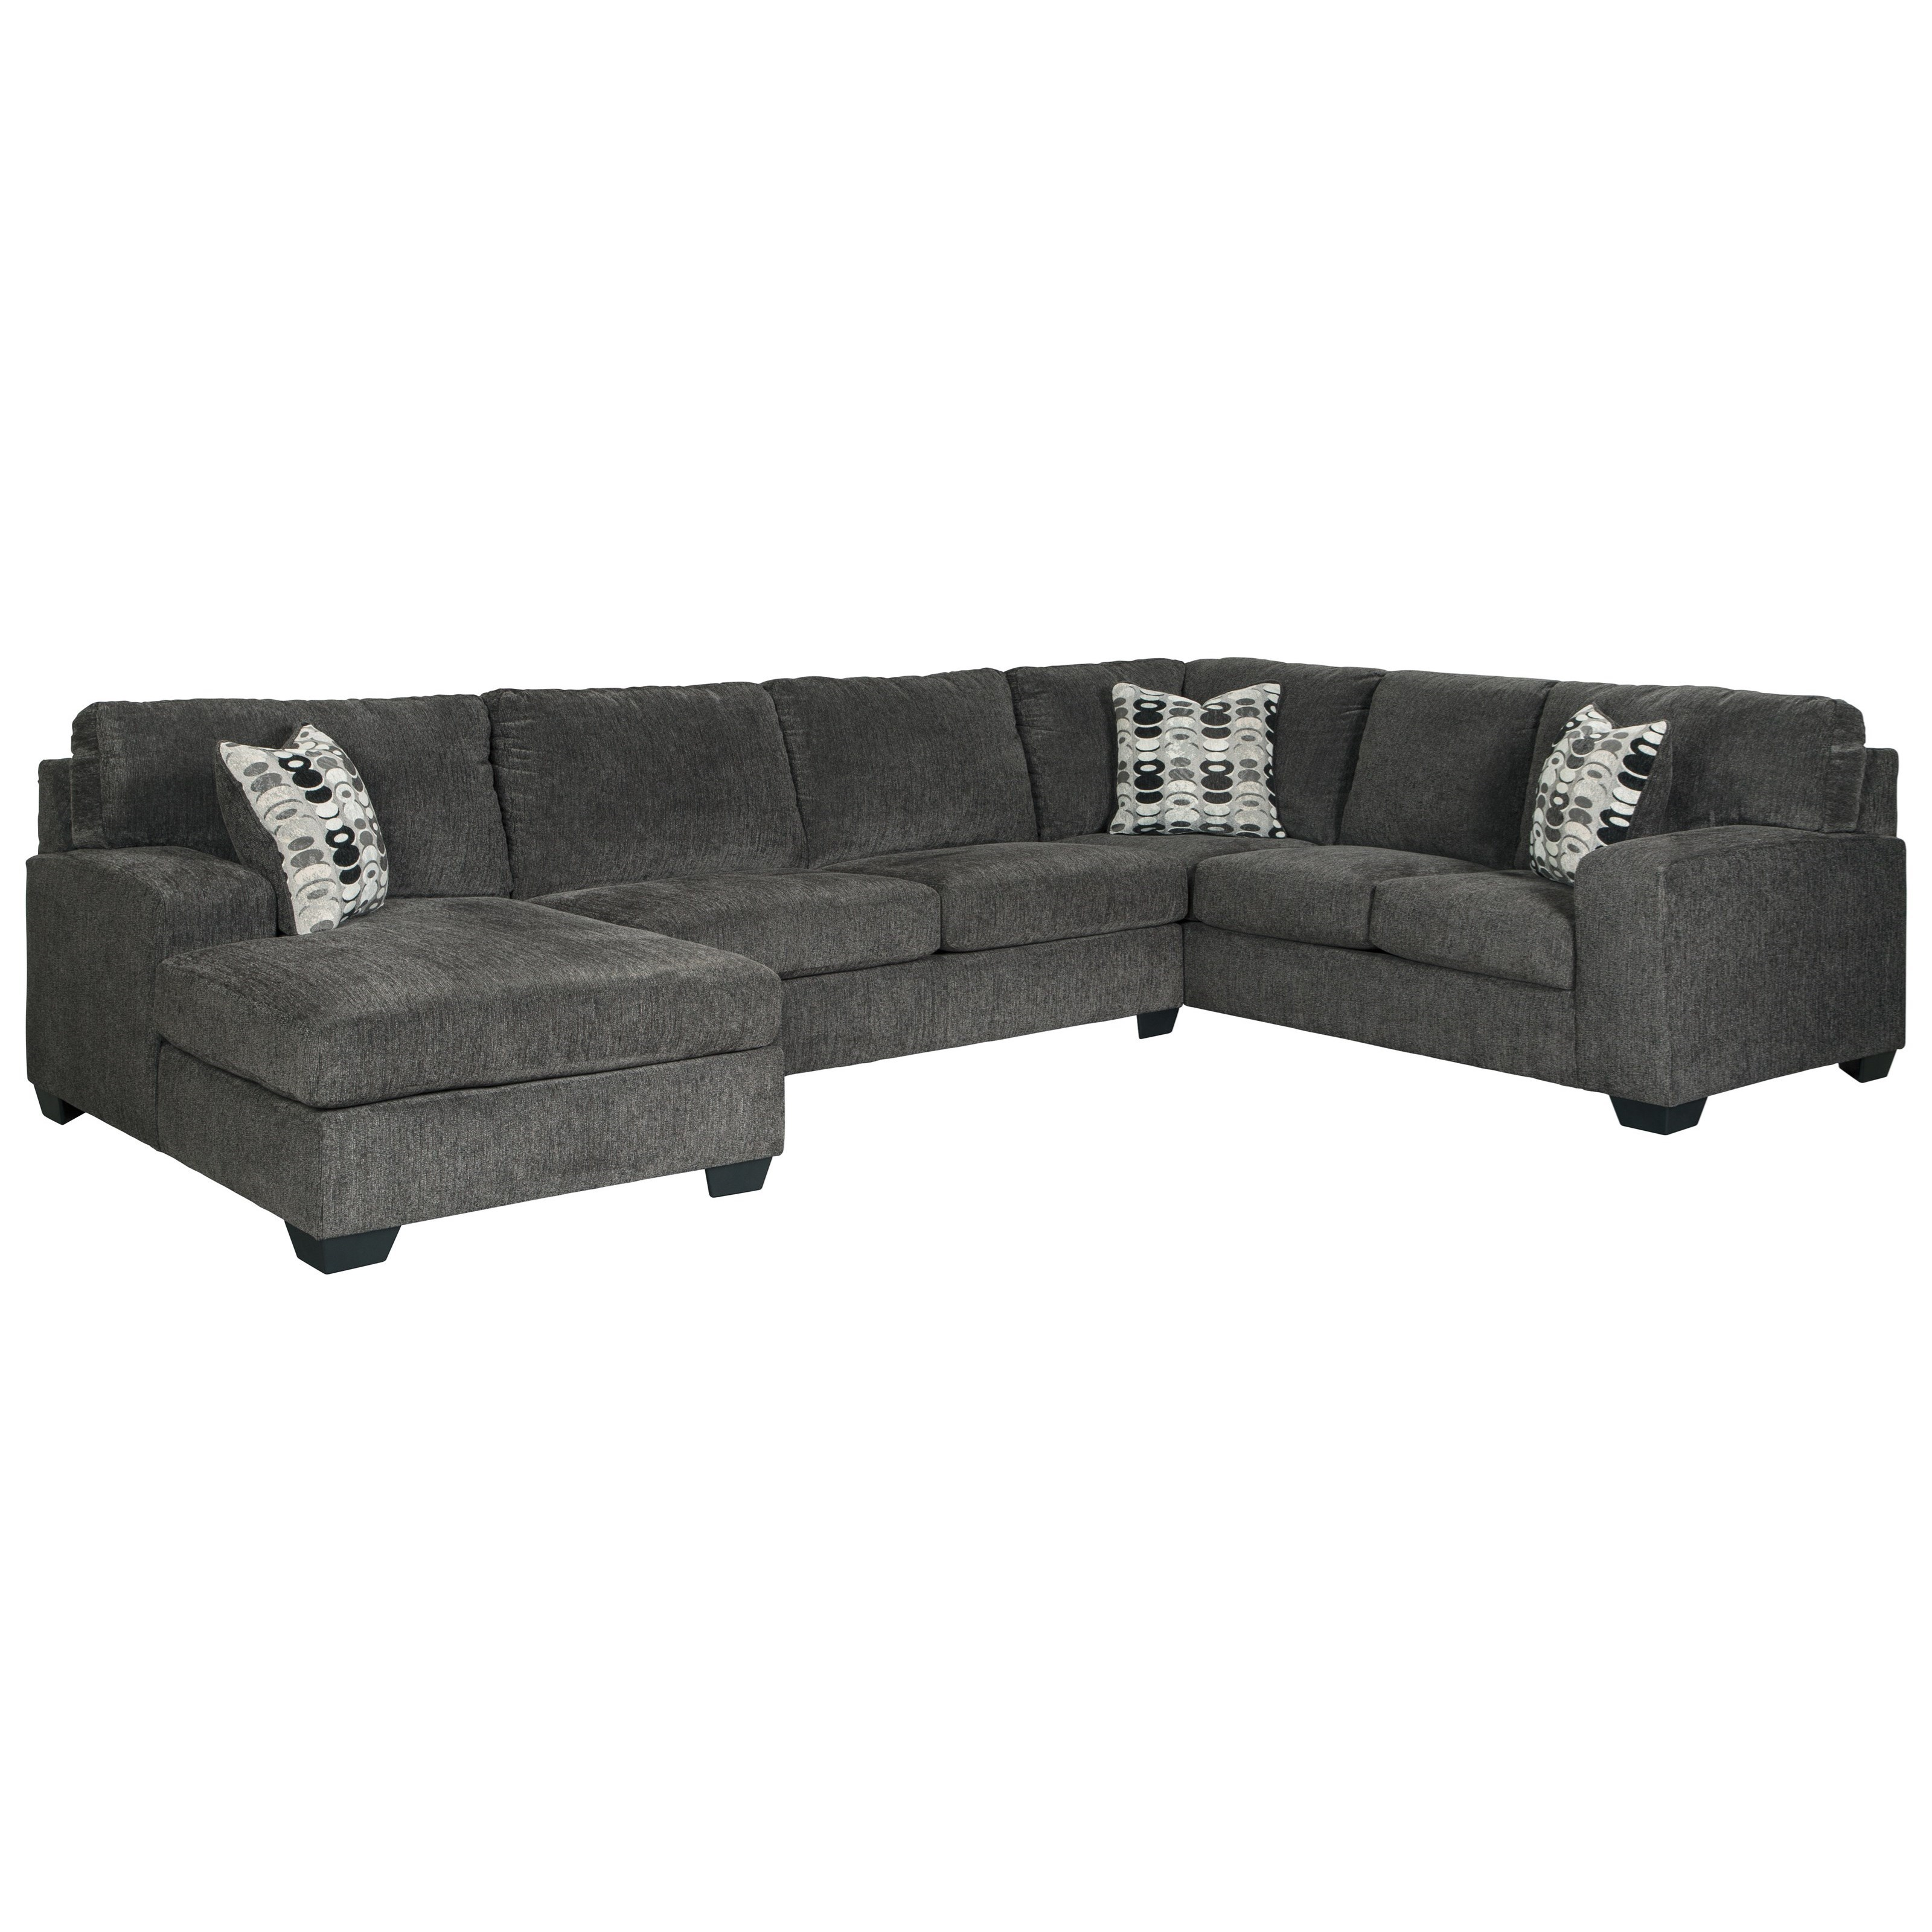 Ballinasloe 3-Piece Sectional by Signature Design by Ashley at Beck's Furniture